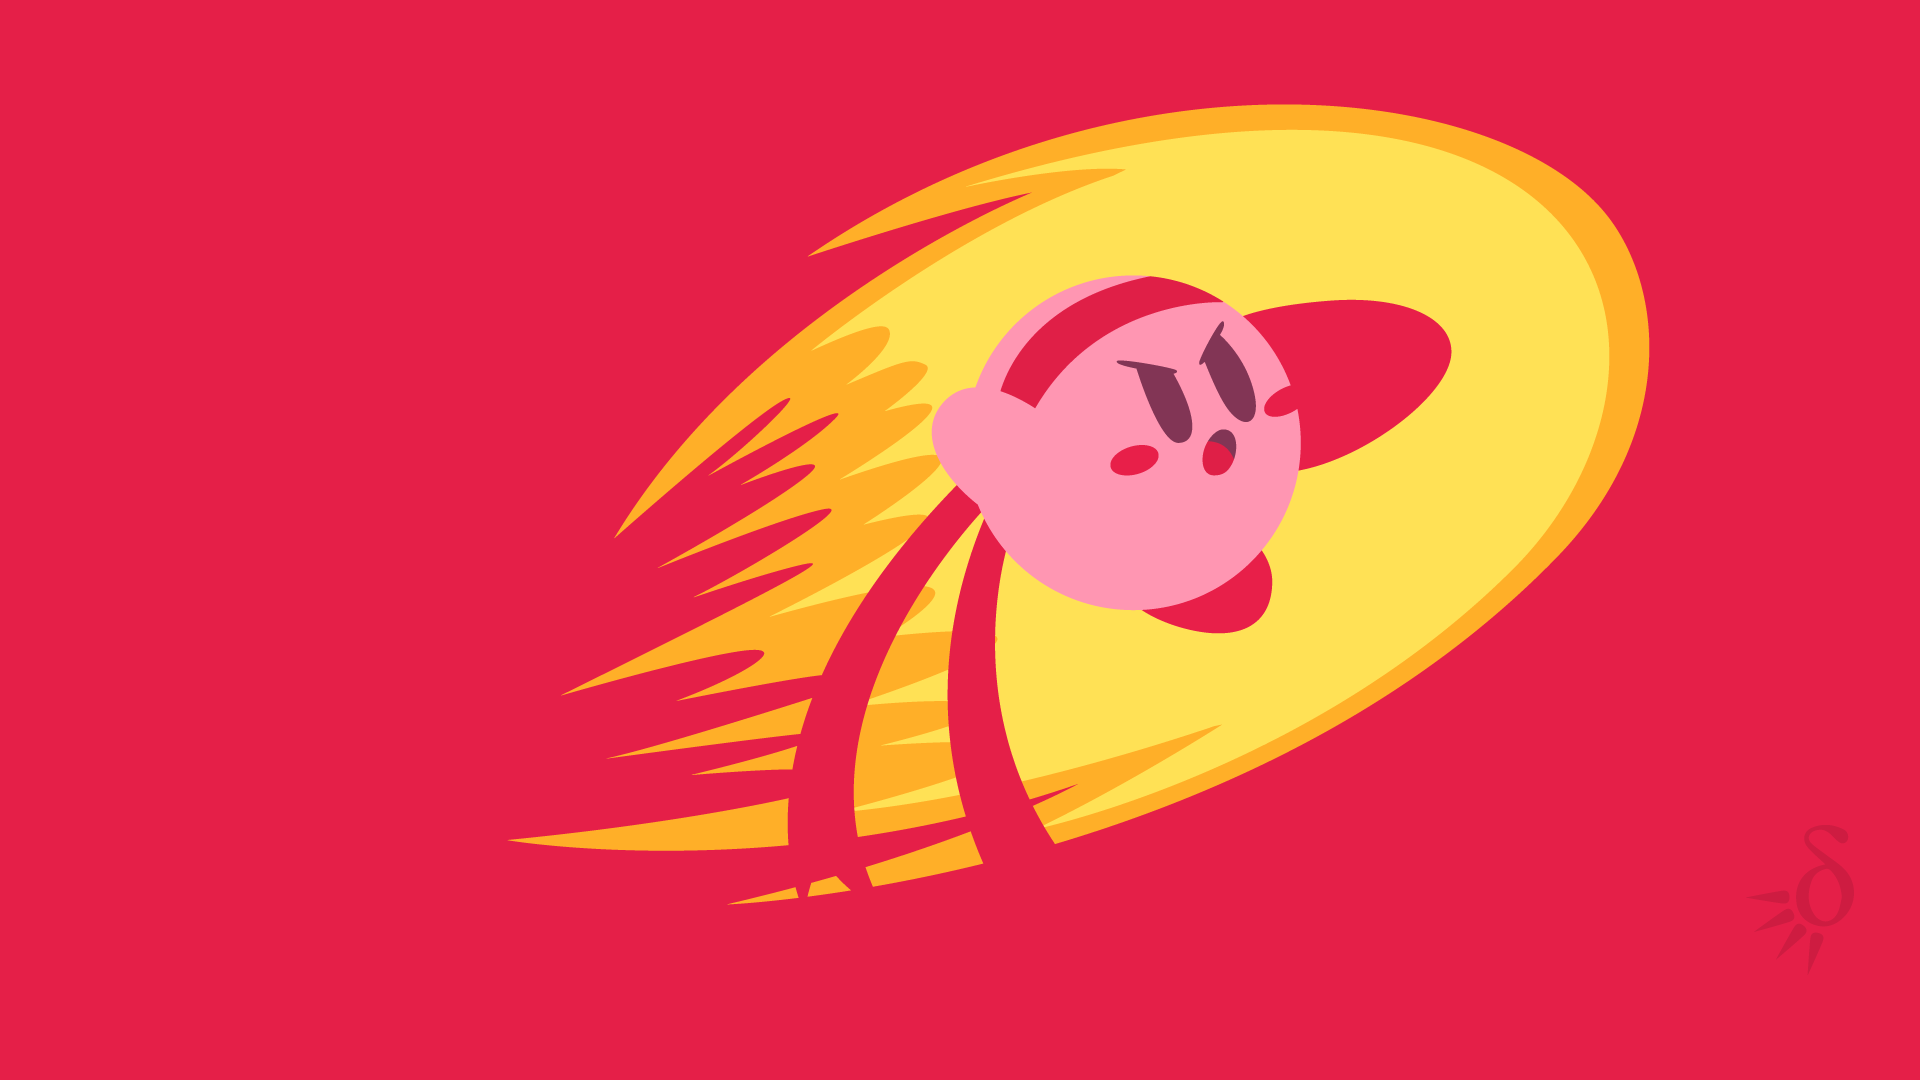 Kirby Wallpapers ID: OLA1111